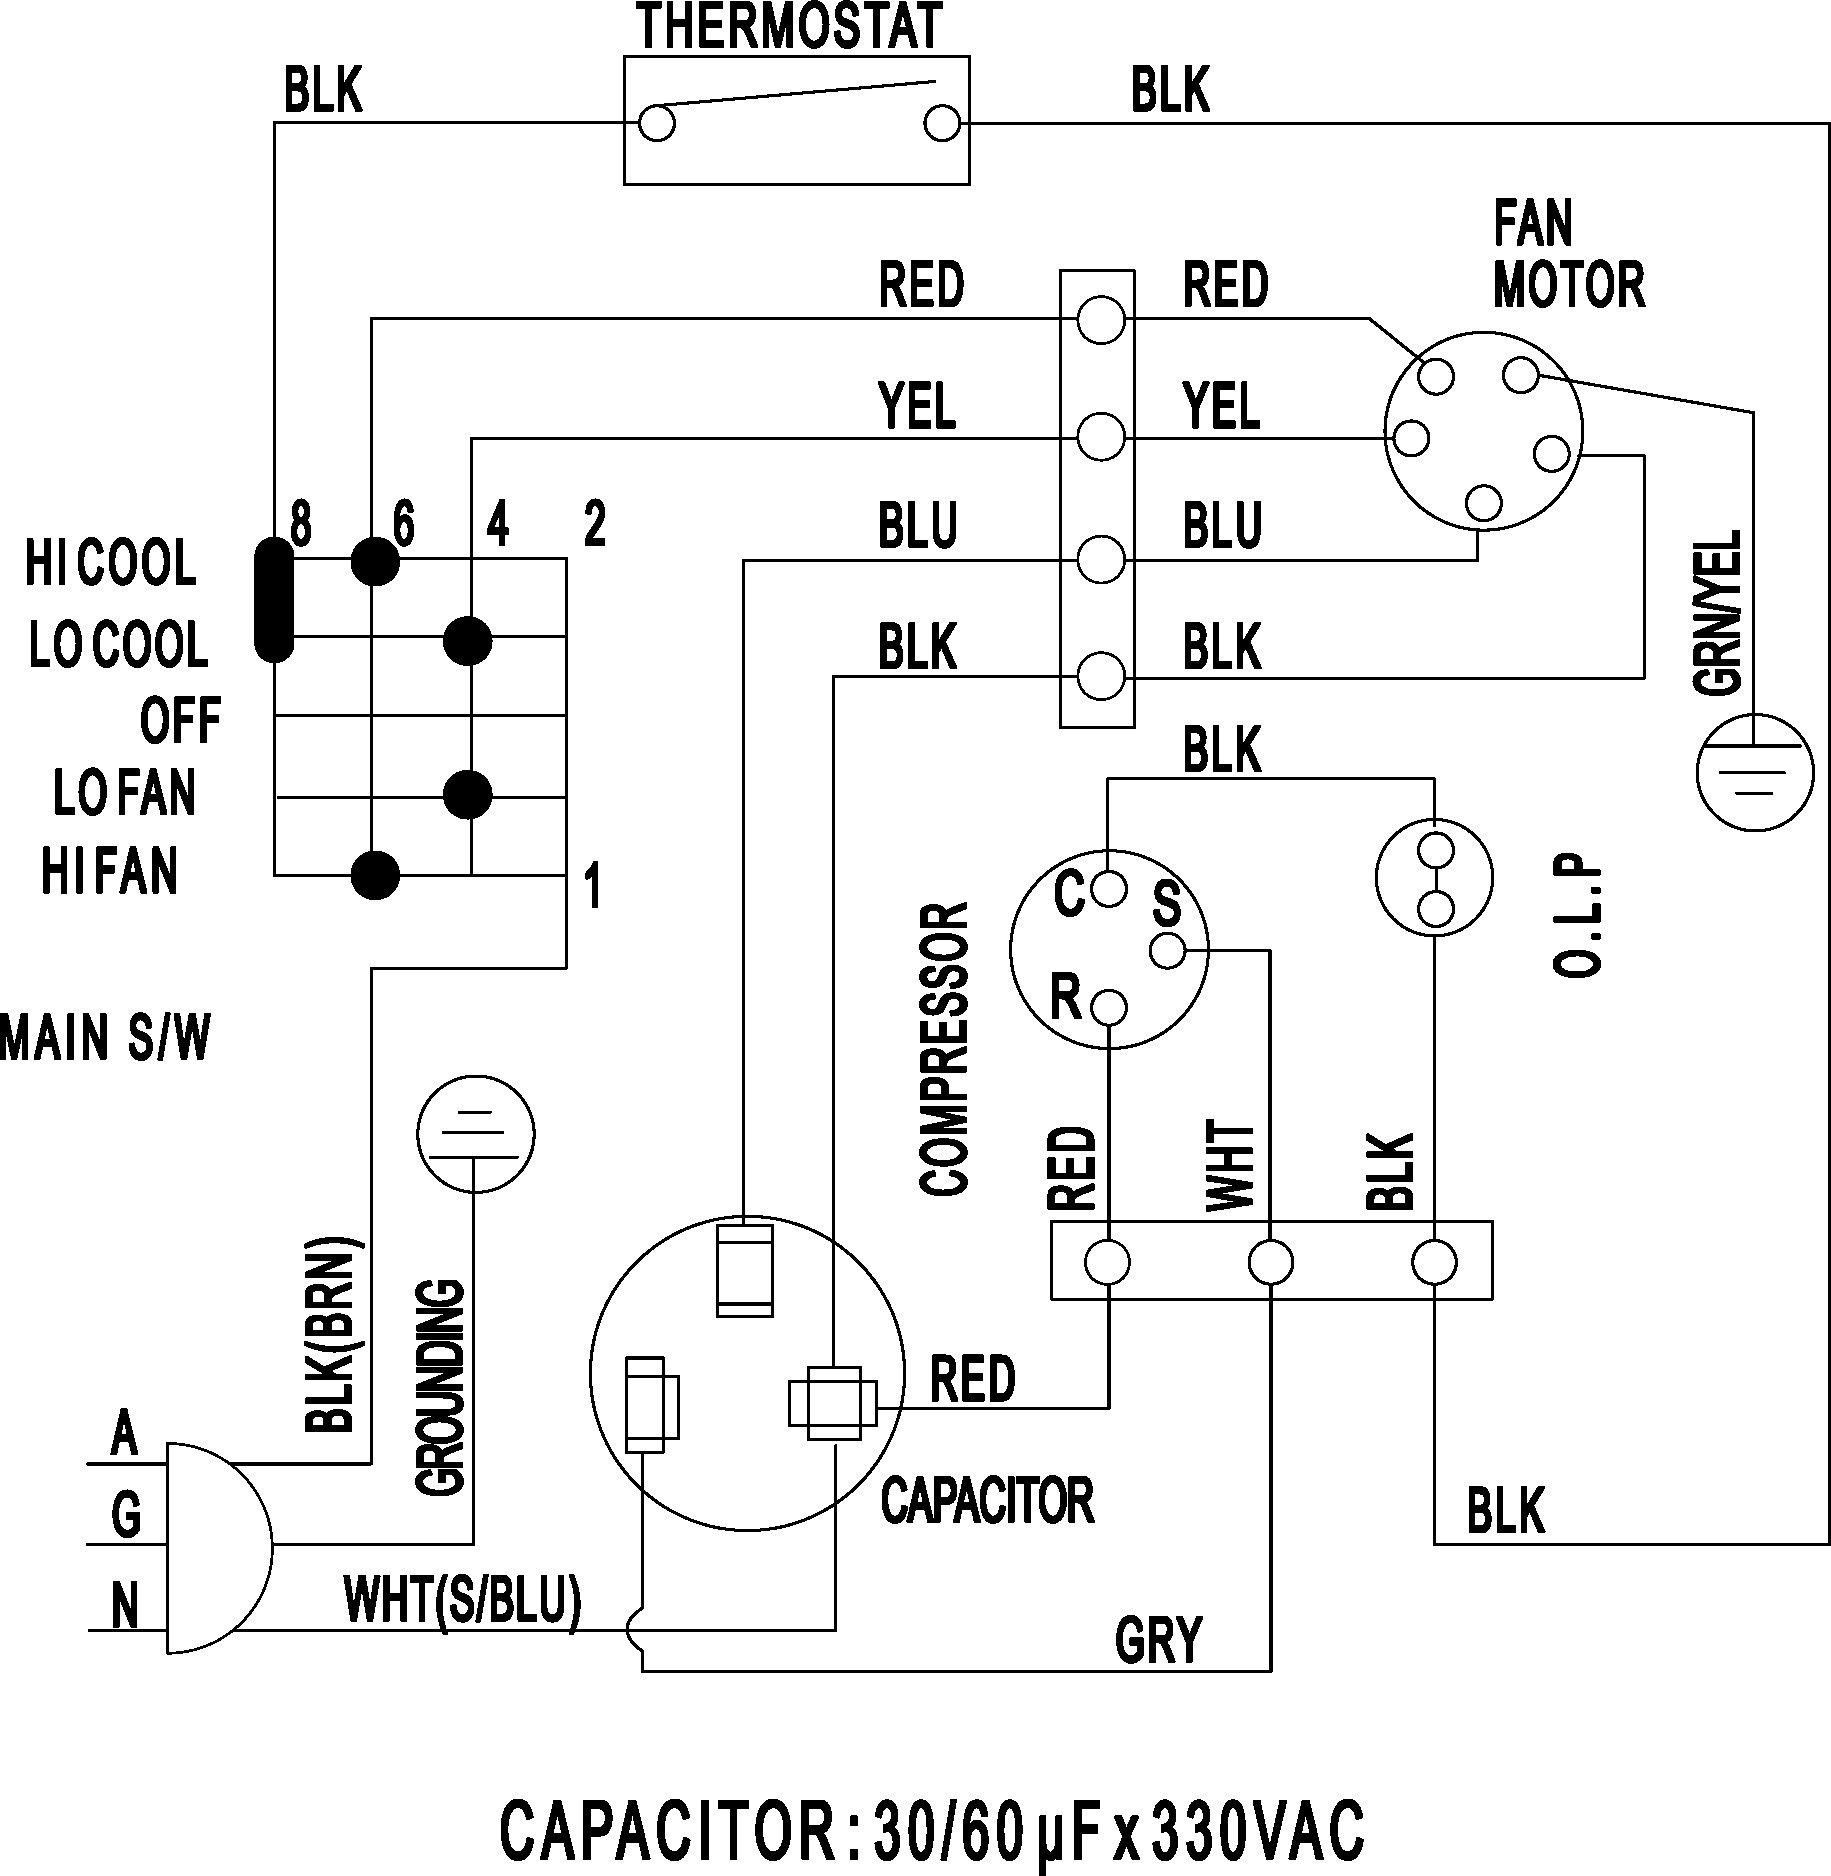 unique fan relay wiring diagram hvac diagram diagramsample diagramtemplate wiringdiagram diagramchart worksheet worksheettemplate [ 1831 x 1876 Pixel ]